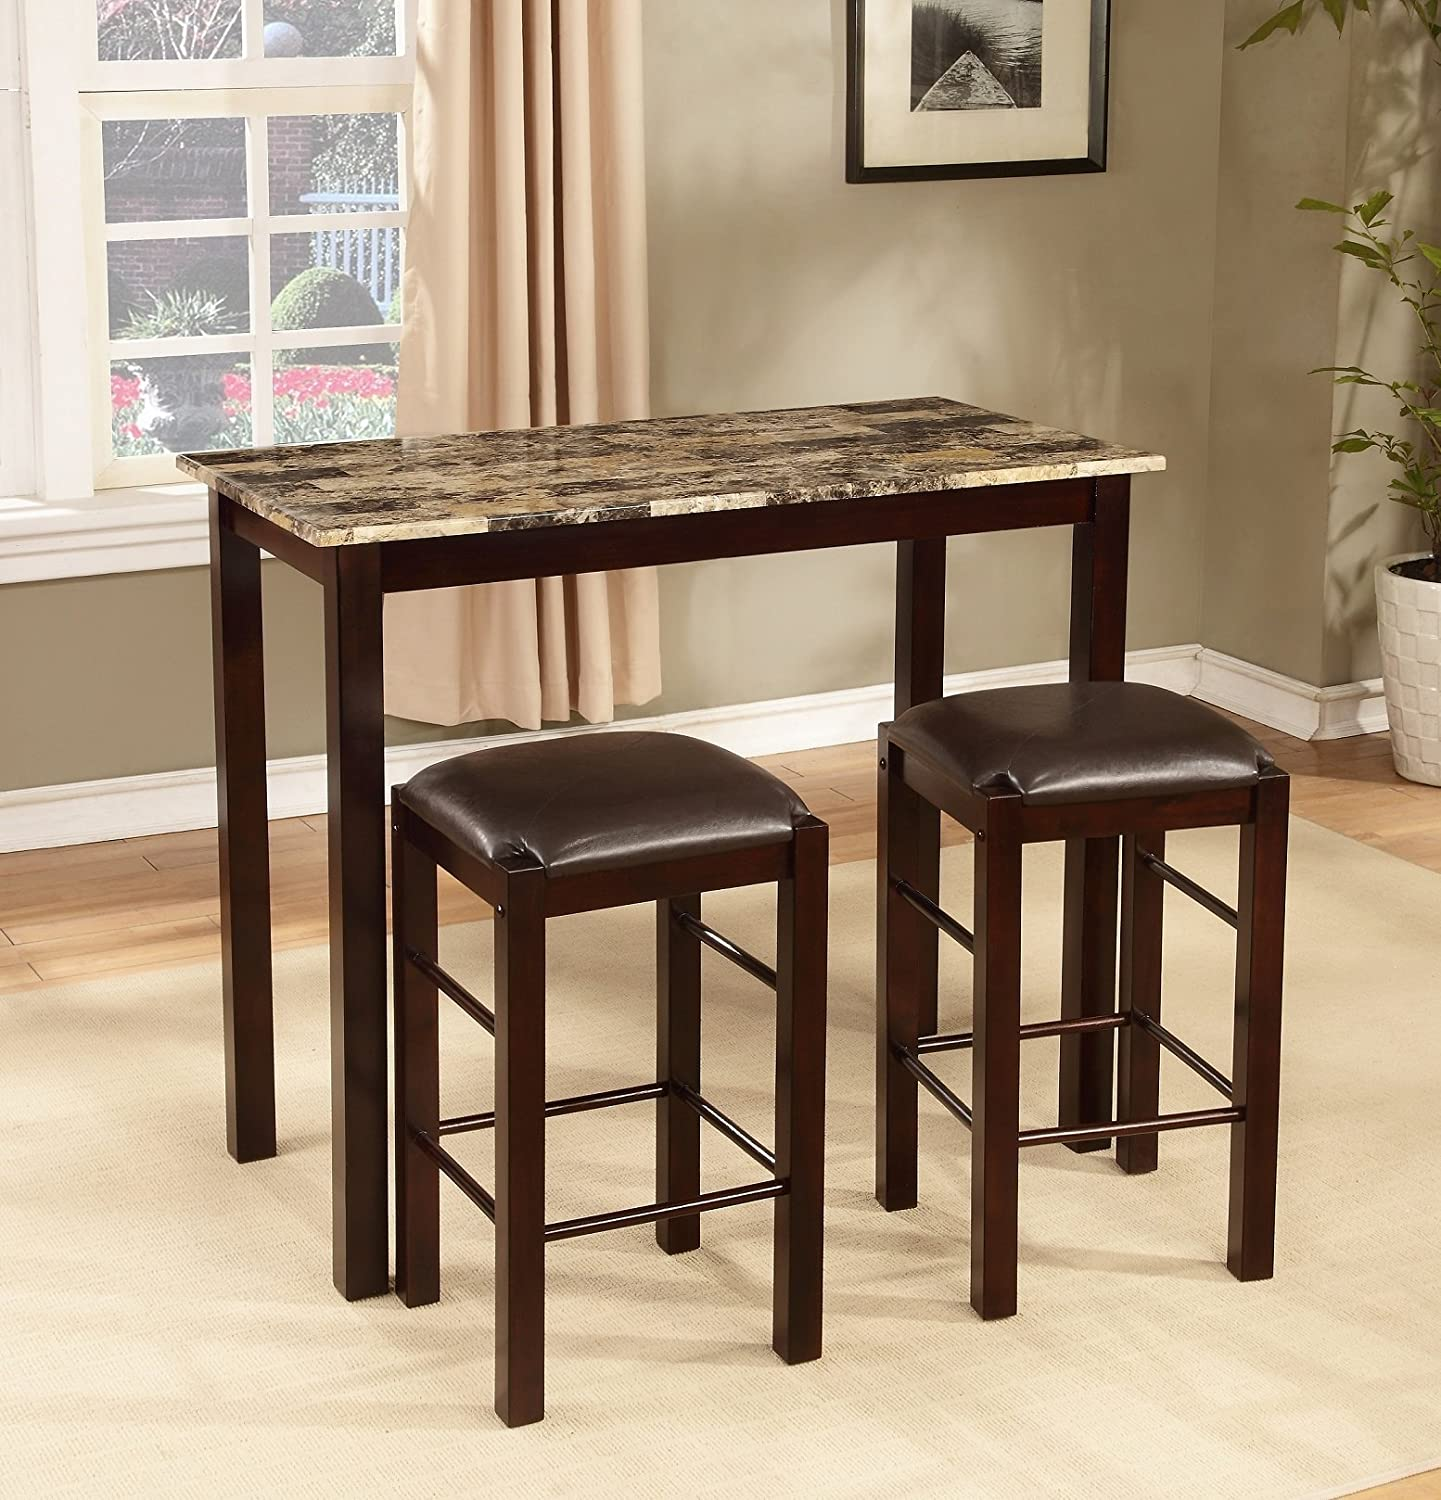 Amazon.com - Roundhill Furniture Brando 3-Piece Counter Height Breakfast Set Espresso Finish - Table u0026 Chair Sets : breakfast table set - pezcame.com